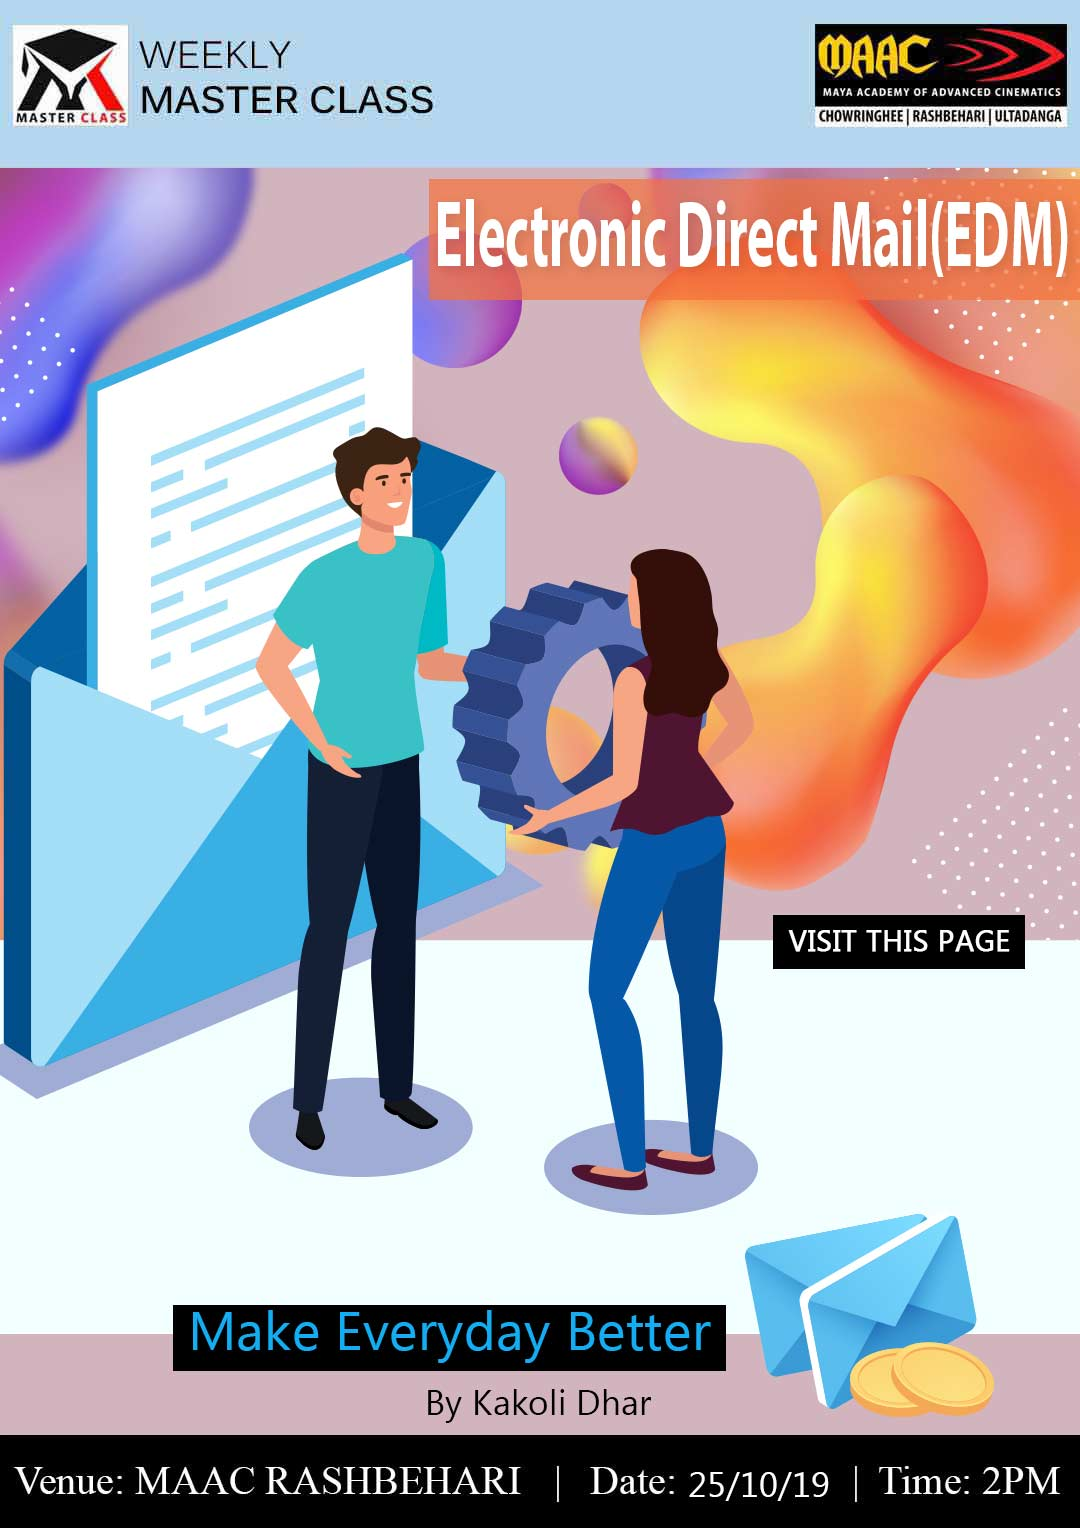 Weekly Master Class on Electronic Direct Mail